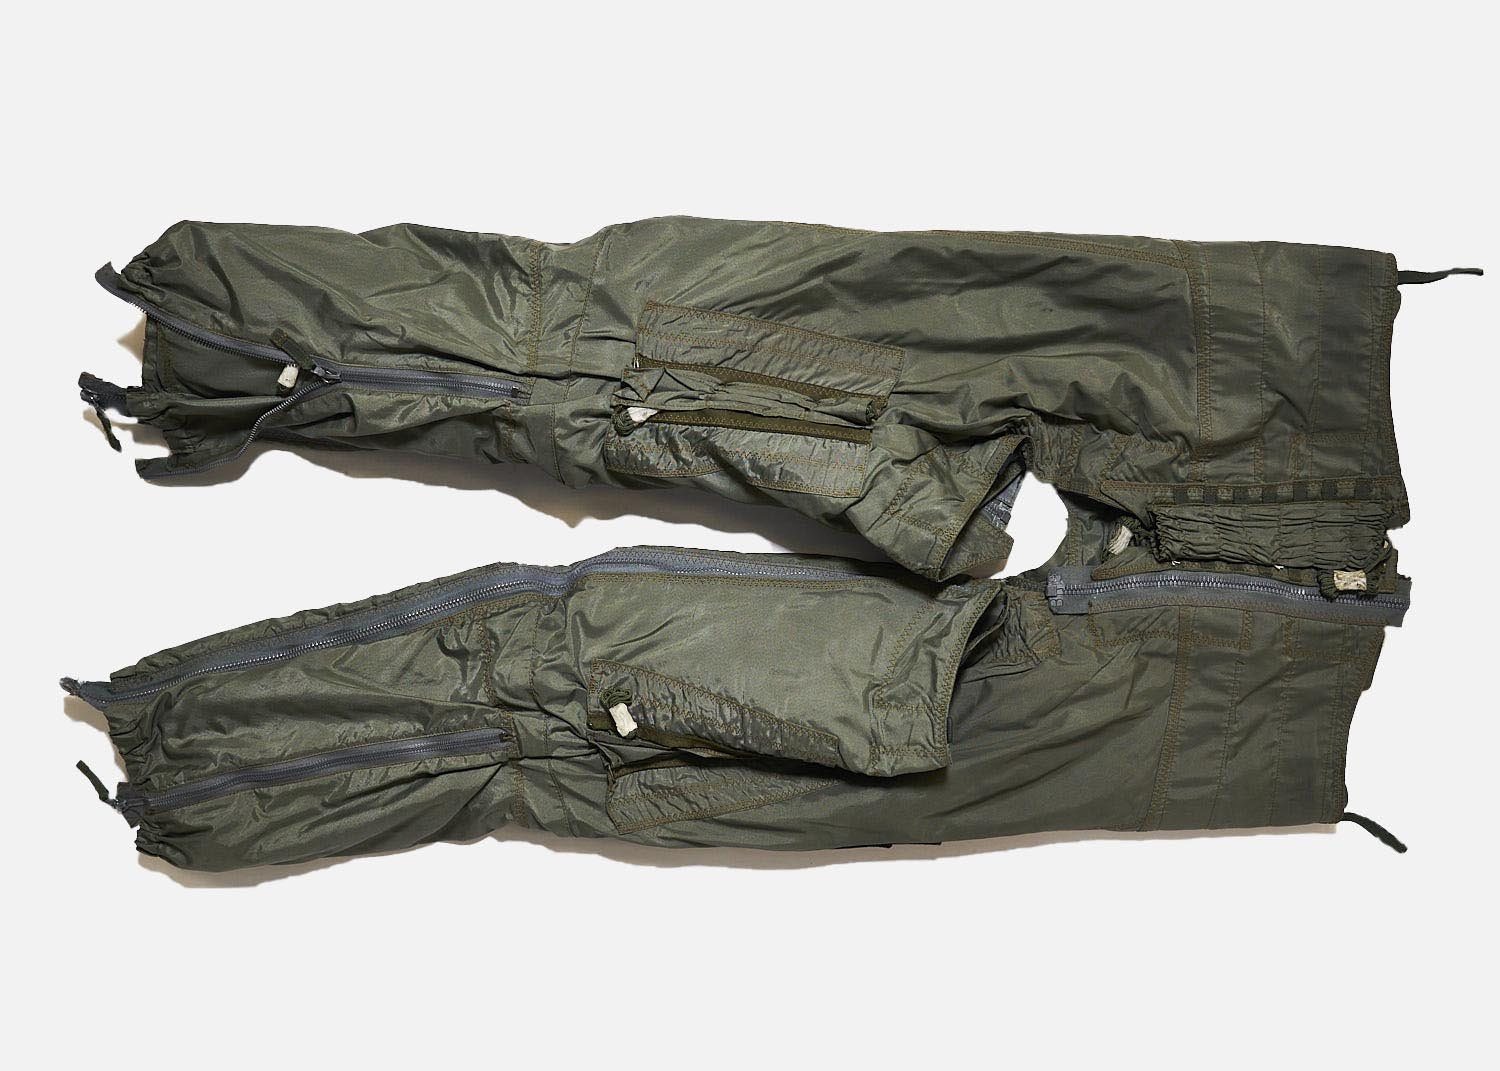 ANTI-G FIELD JACKET